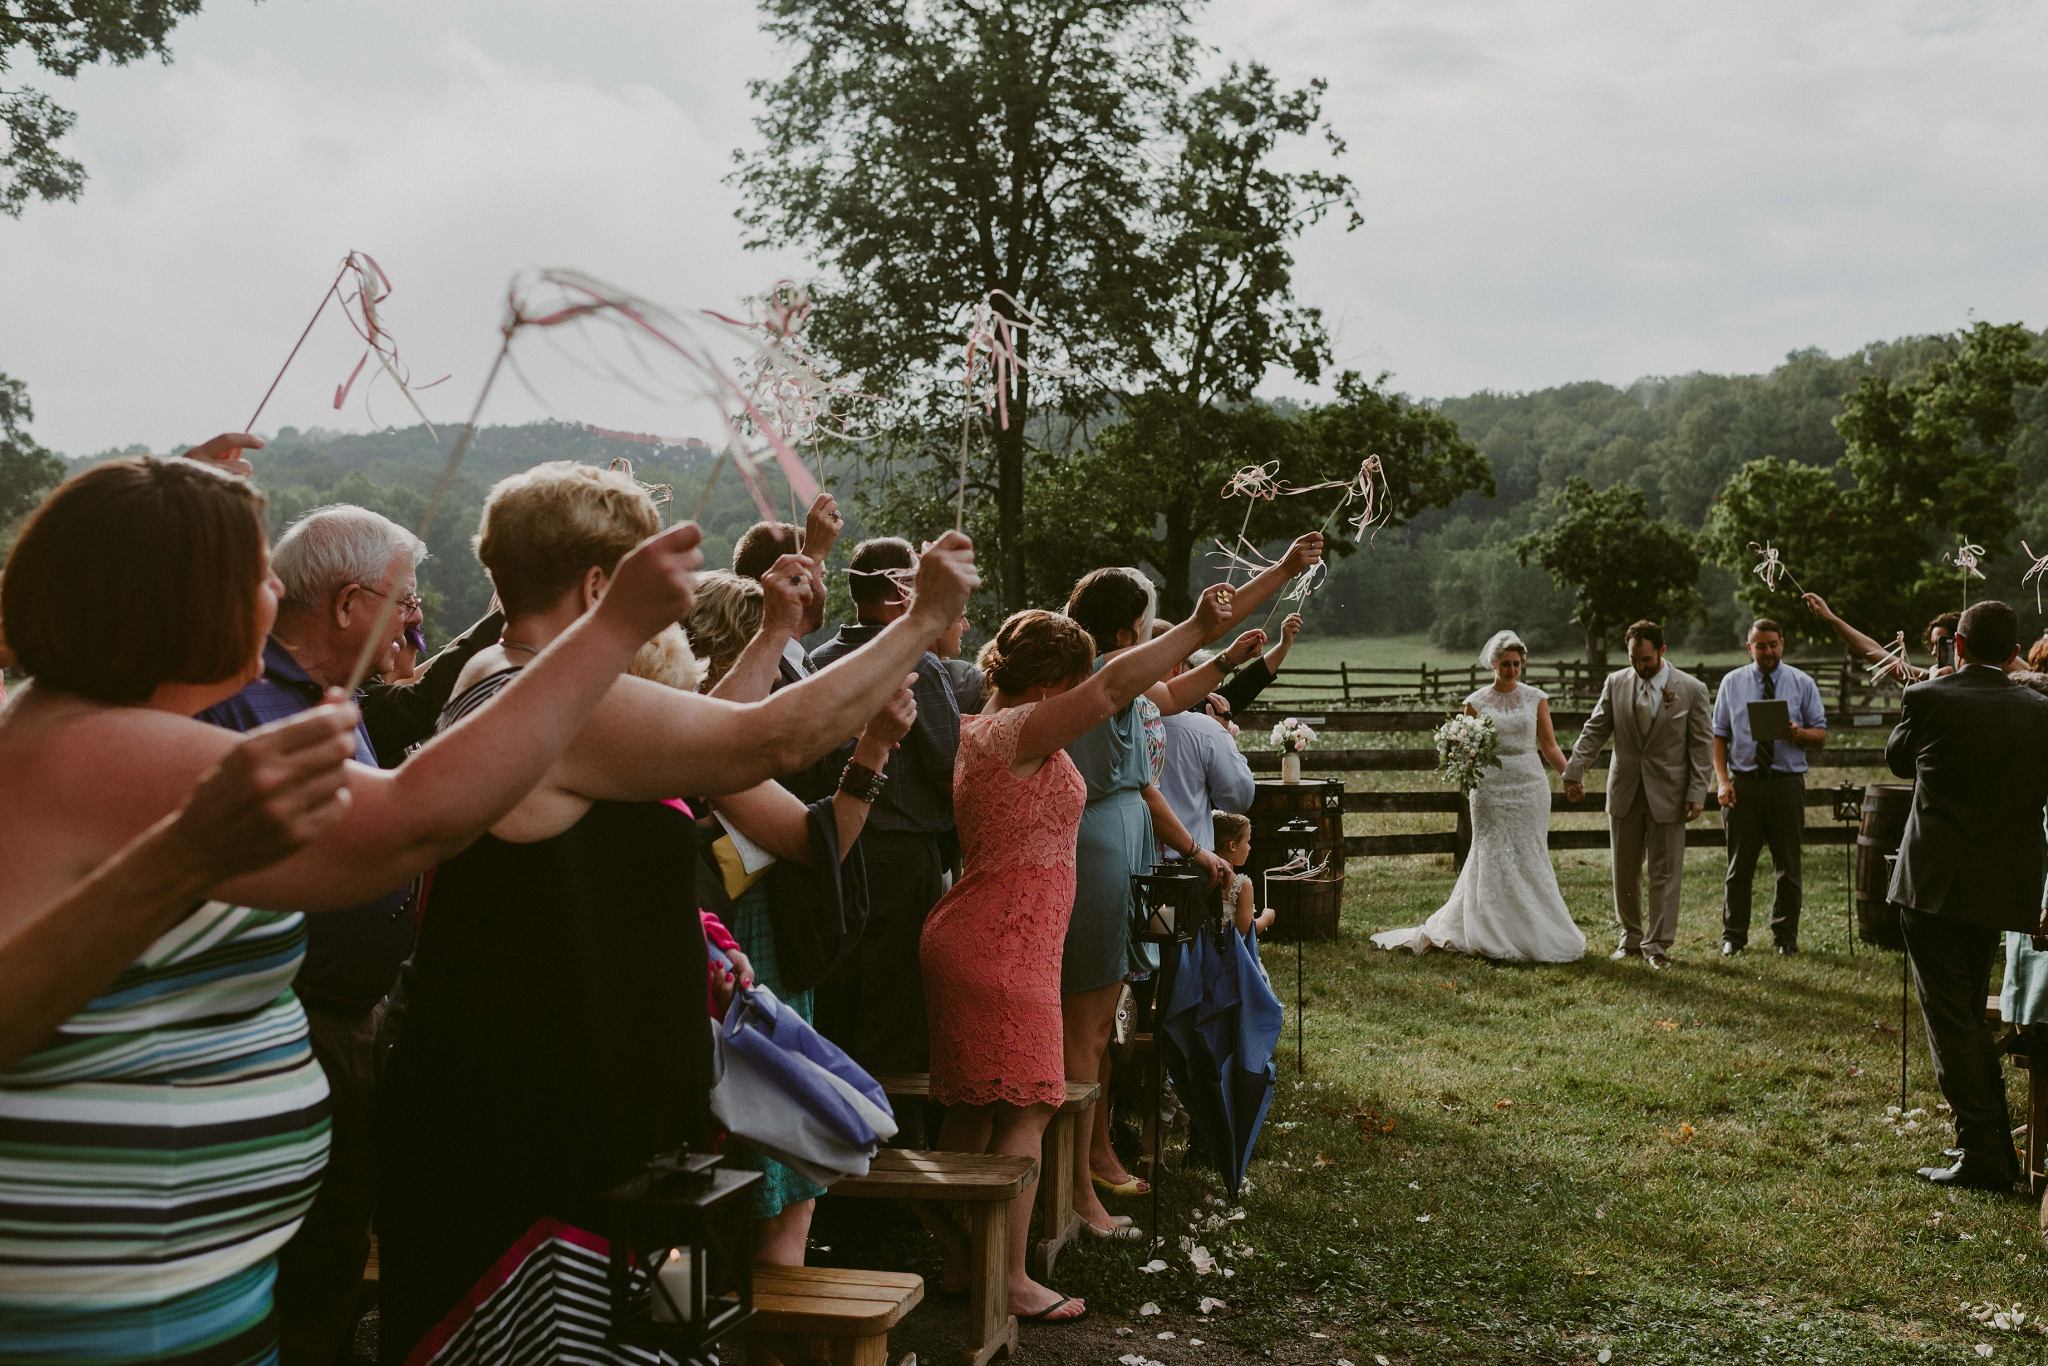 Hines-Hill-Farm-Cuyahoga-Valley-National-Park-Wedding_Emi+Andy_MJPHOTO-523.jpg